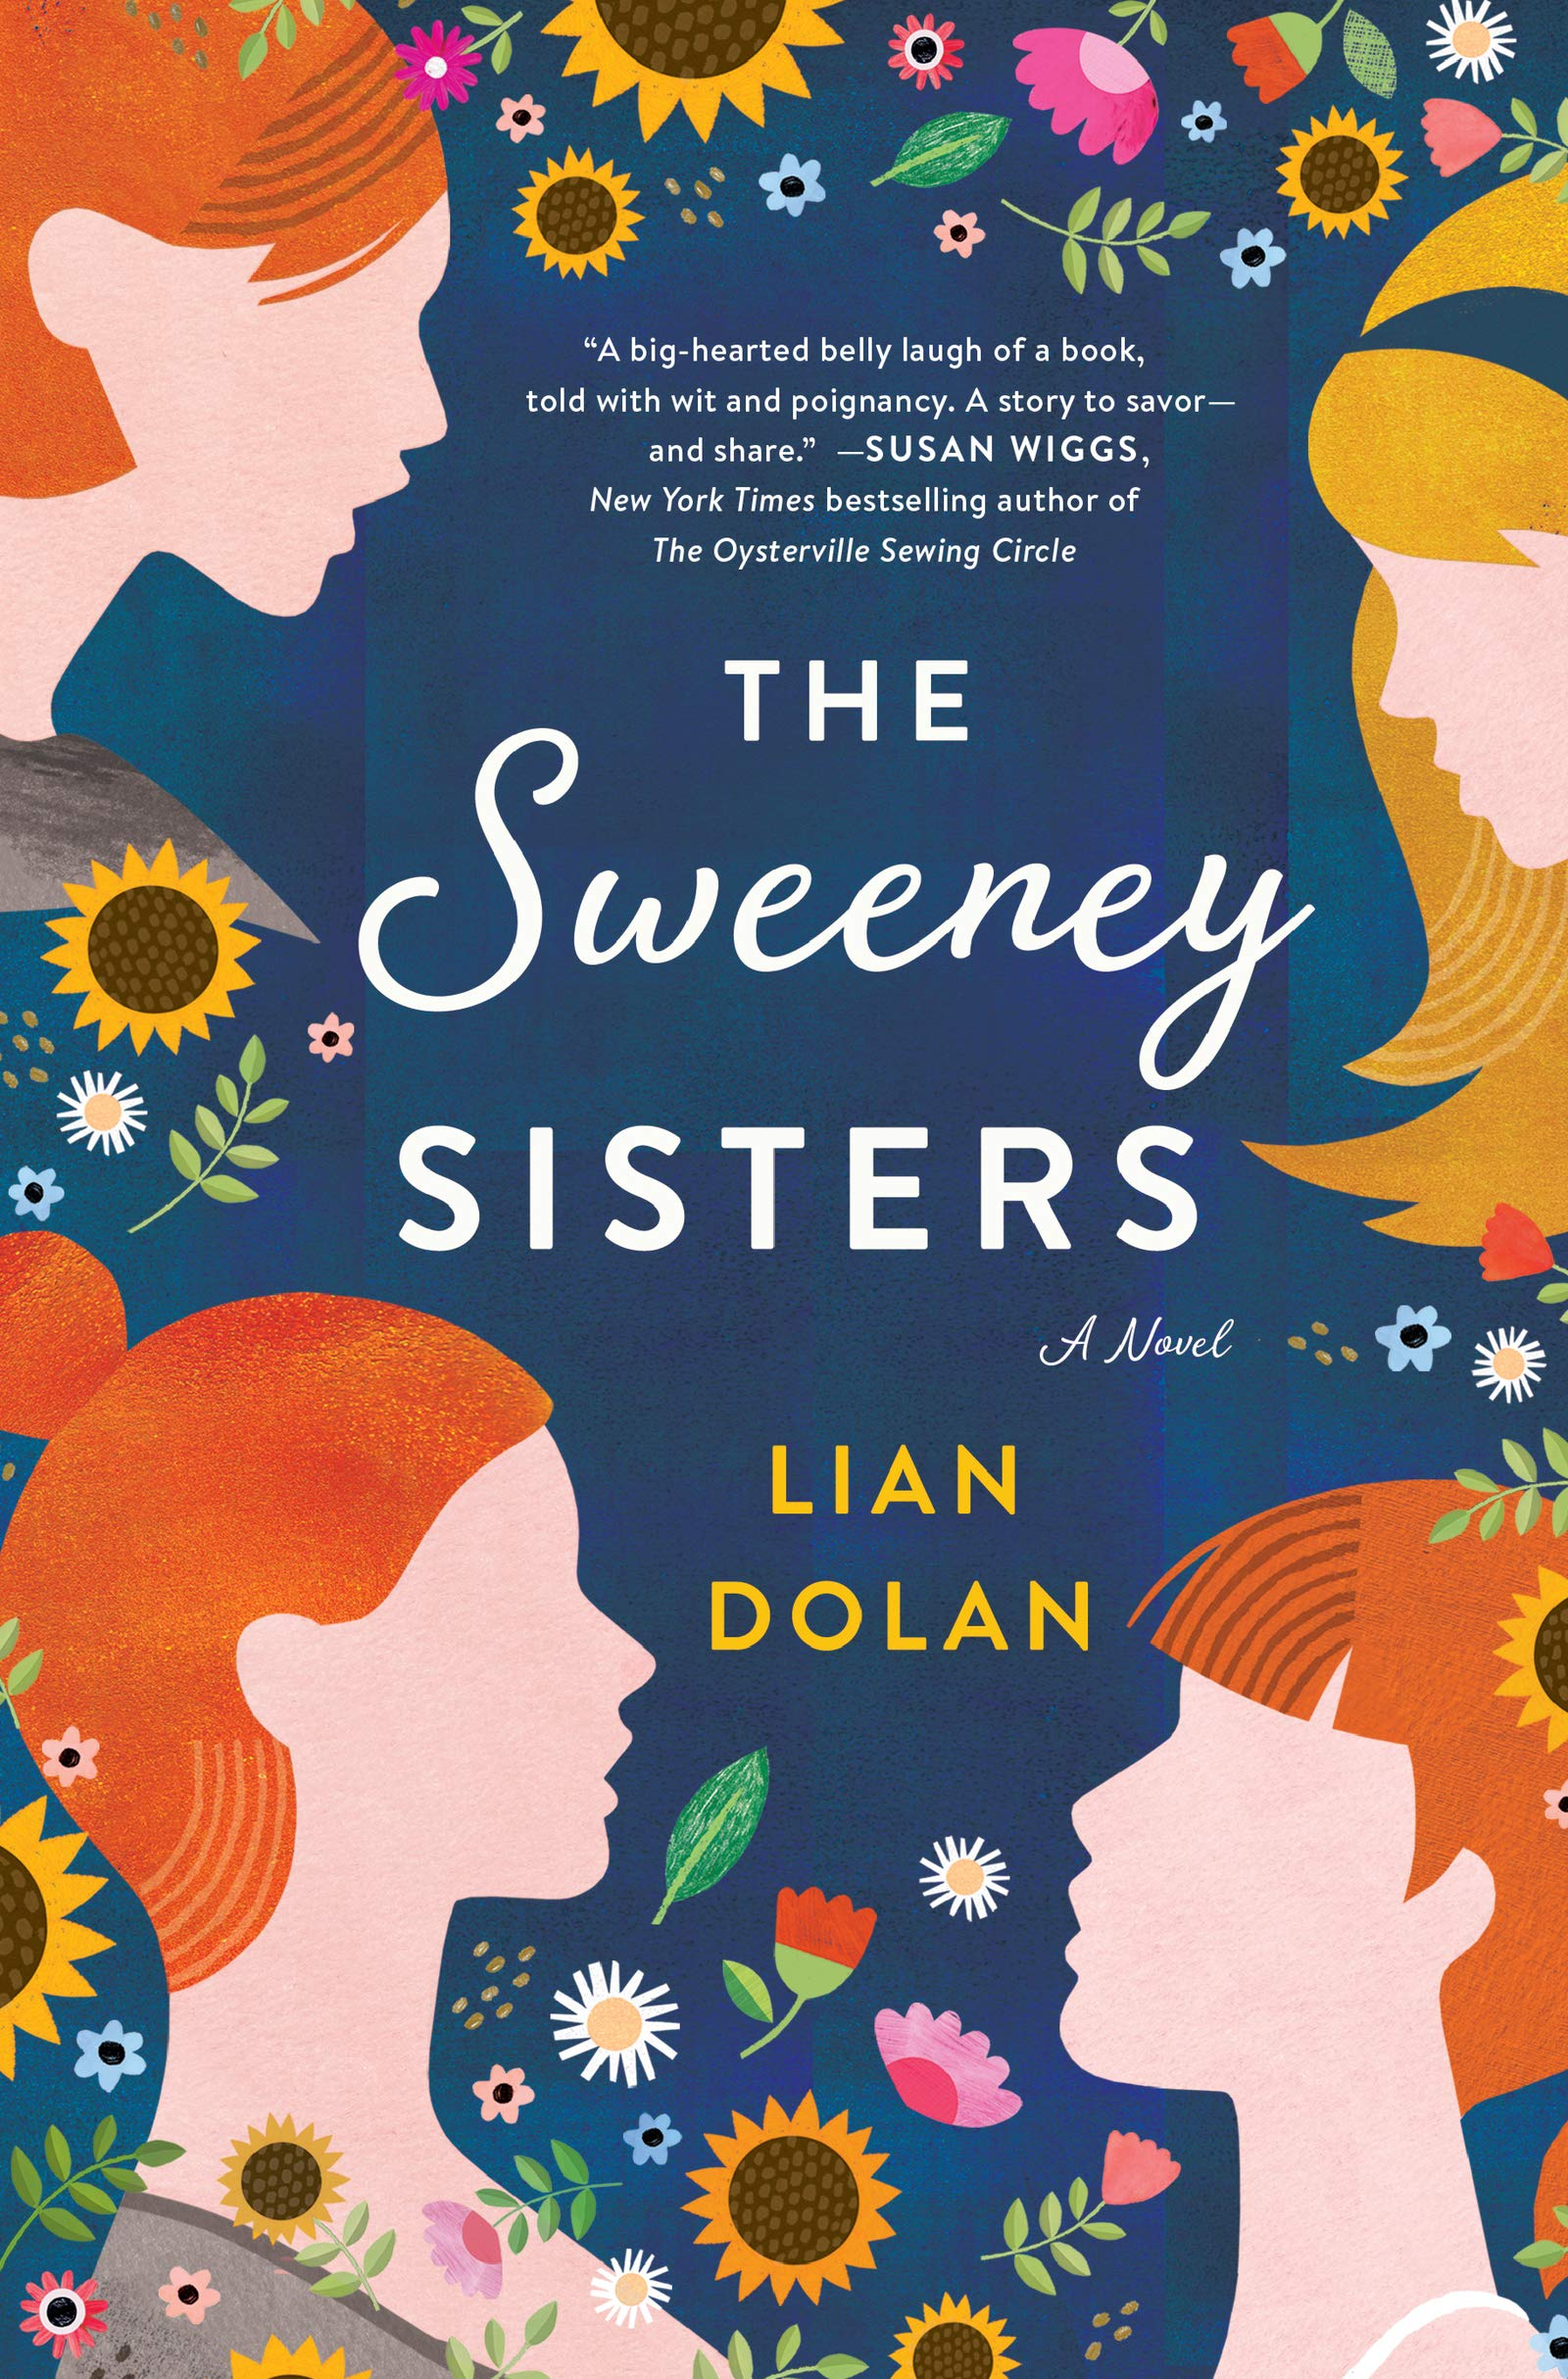 The Sweeney Sisters by Lian Dolan